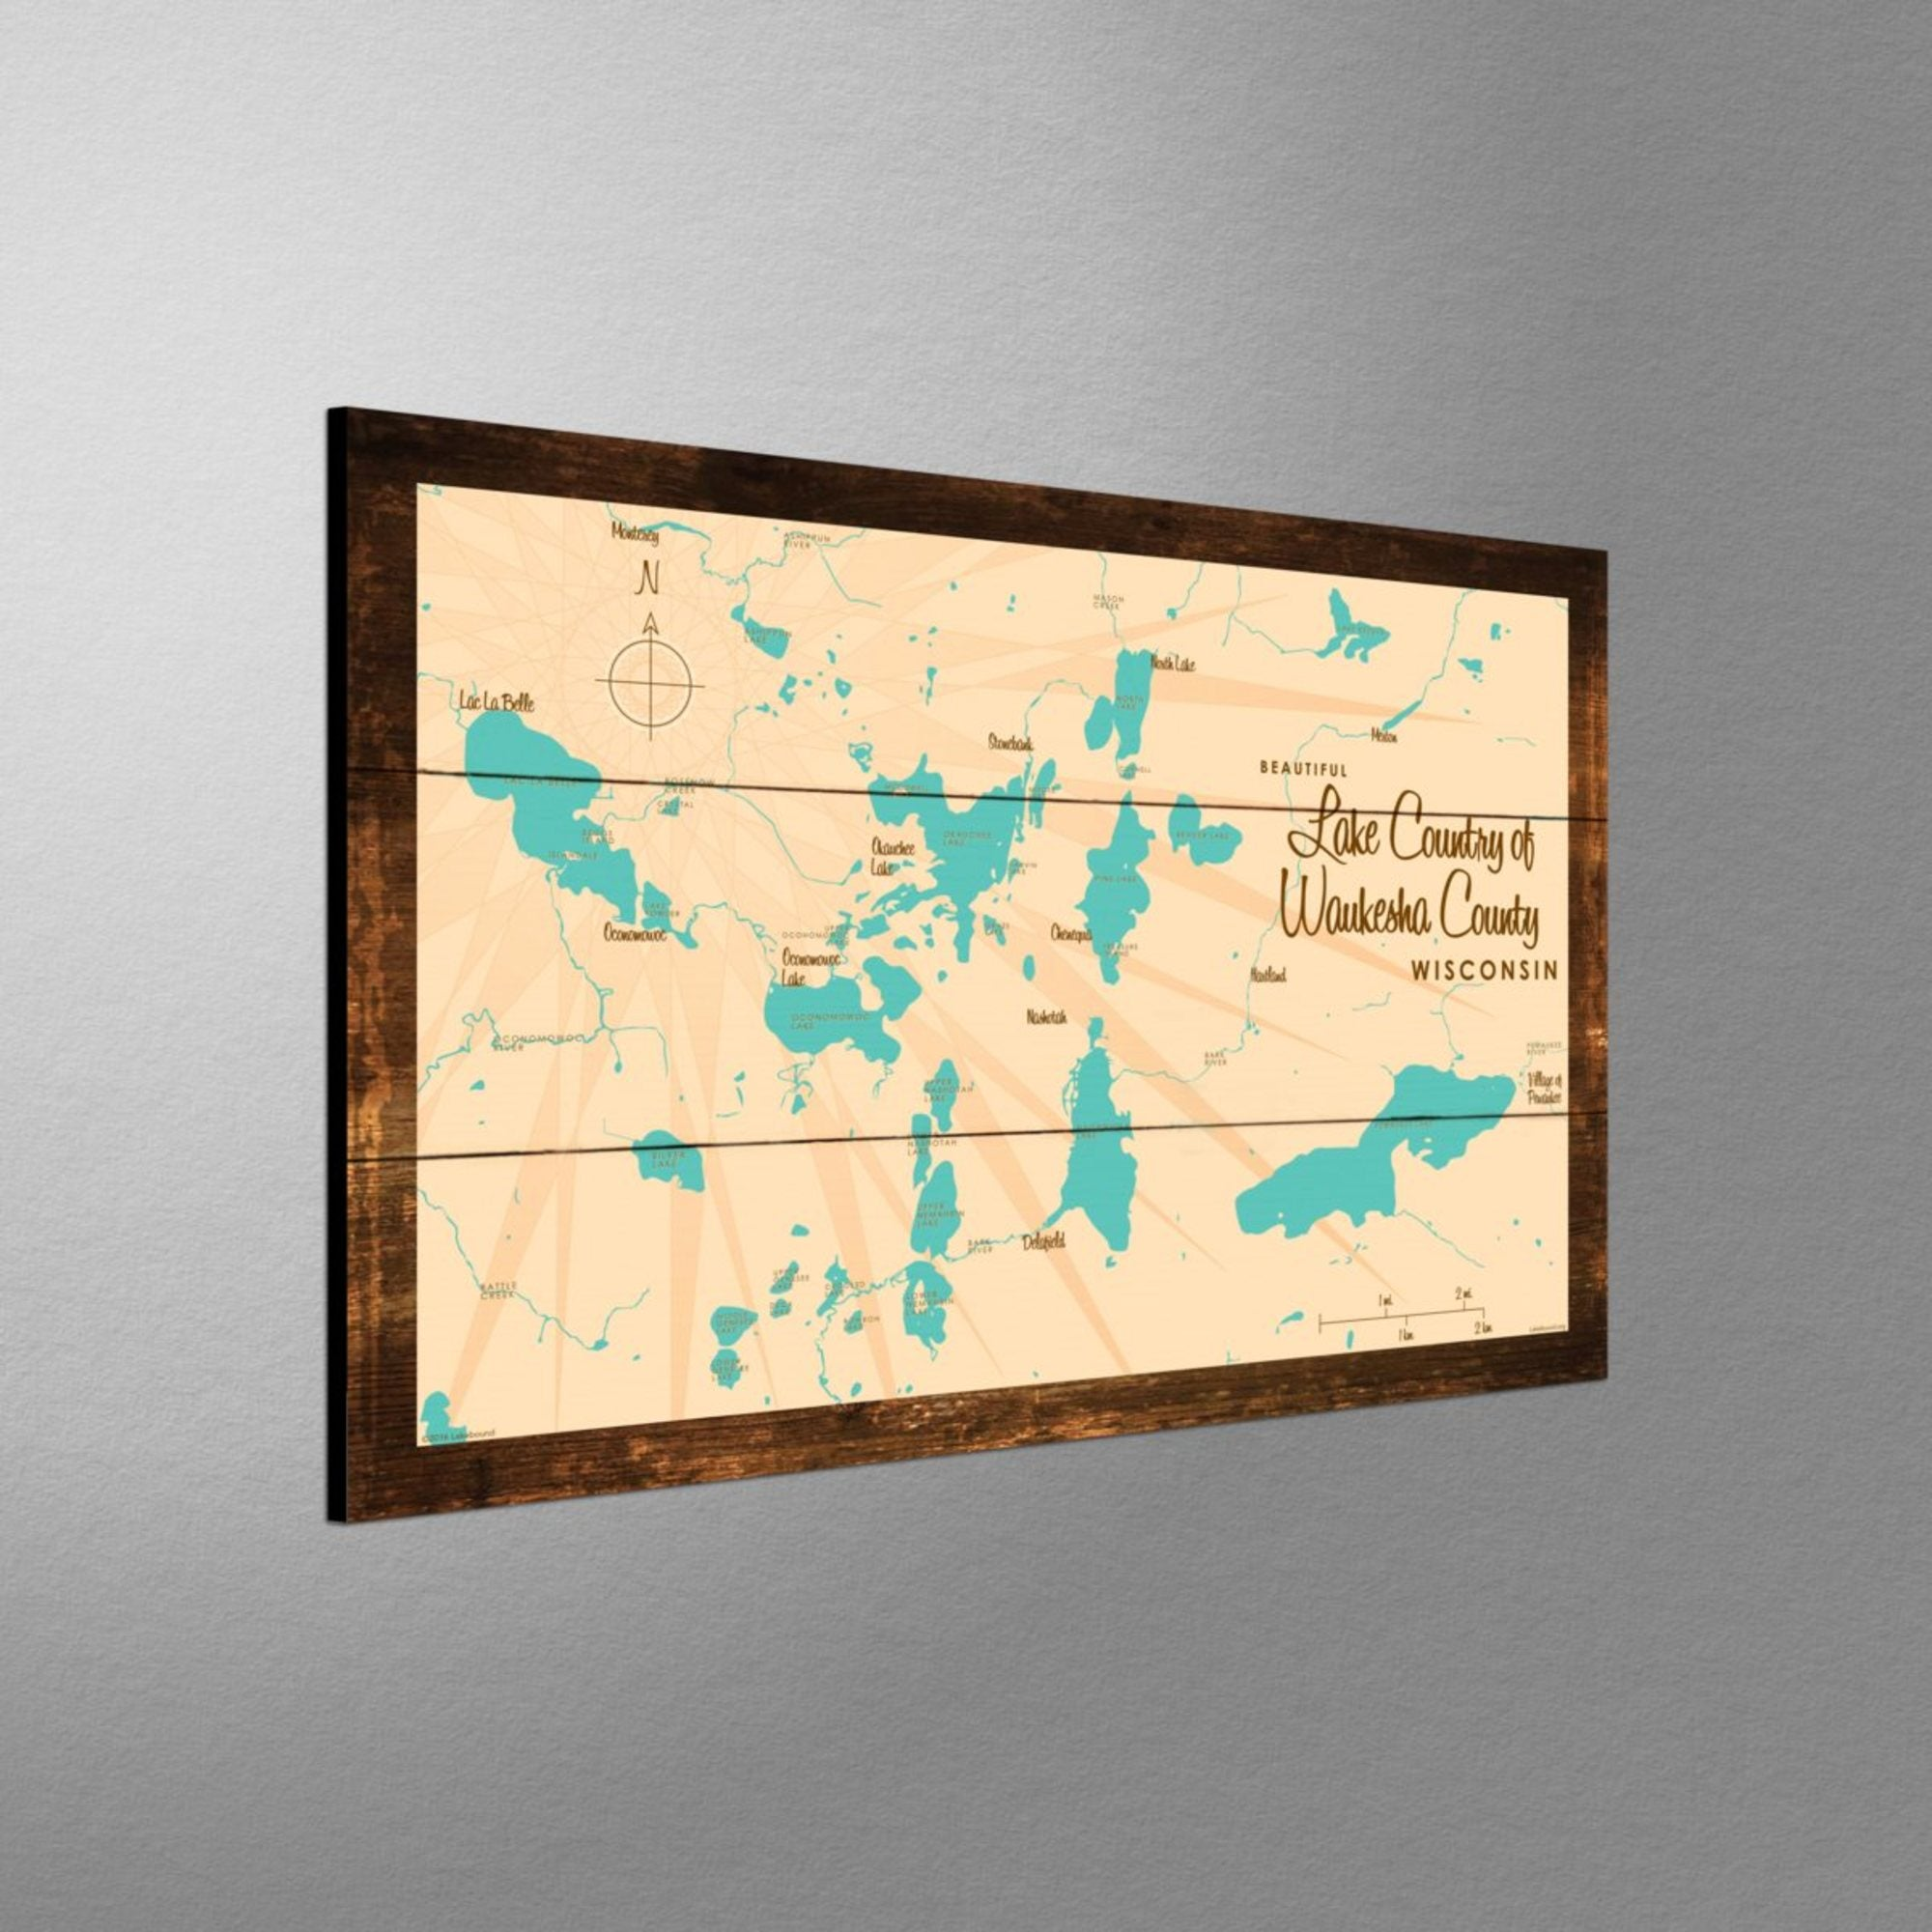 Lake Country Waukesha County Wisconsin, Rustic Wood Sign Map Art